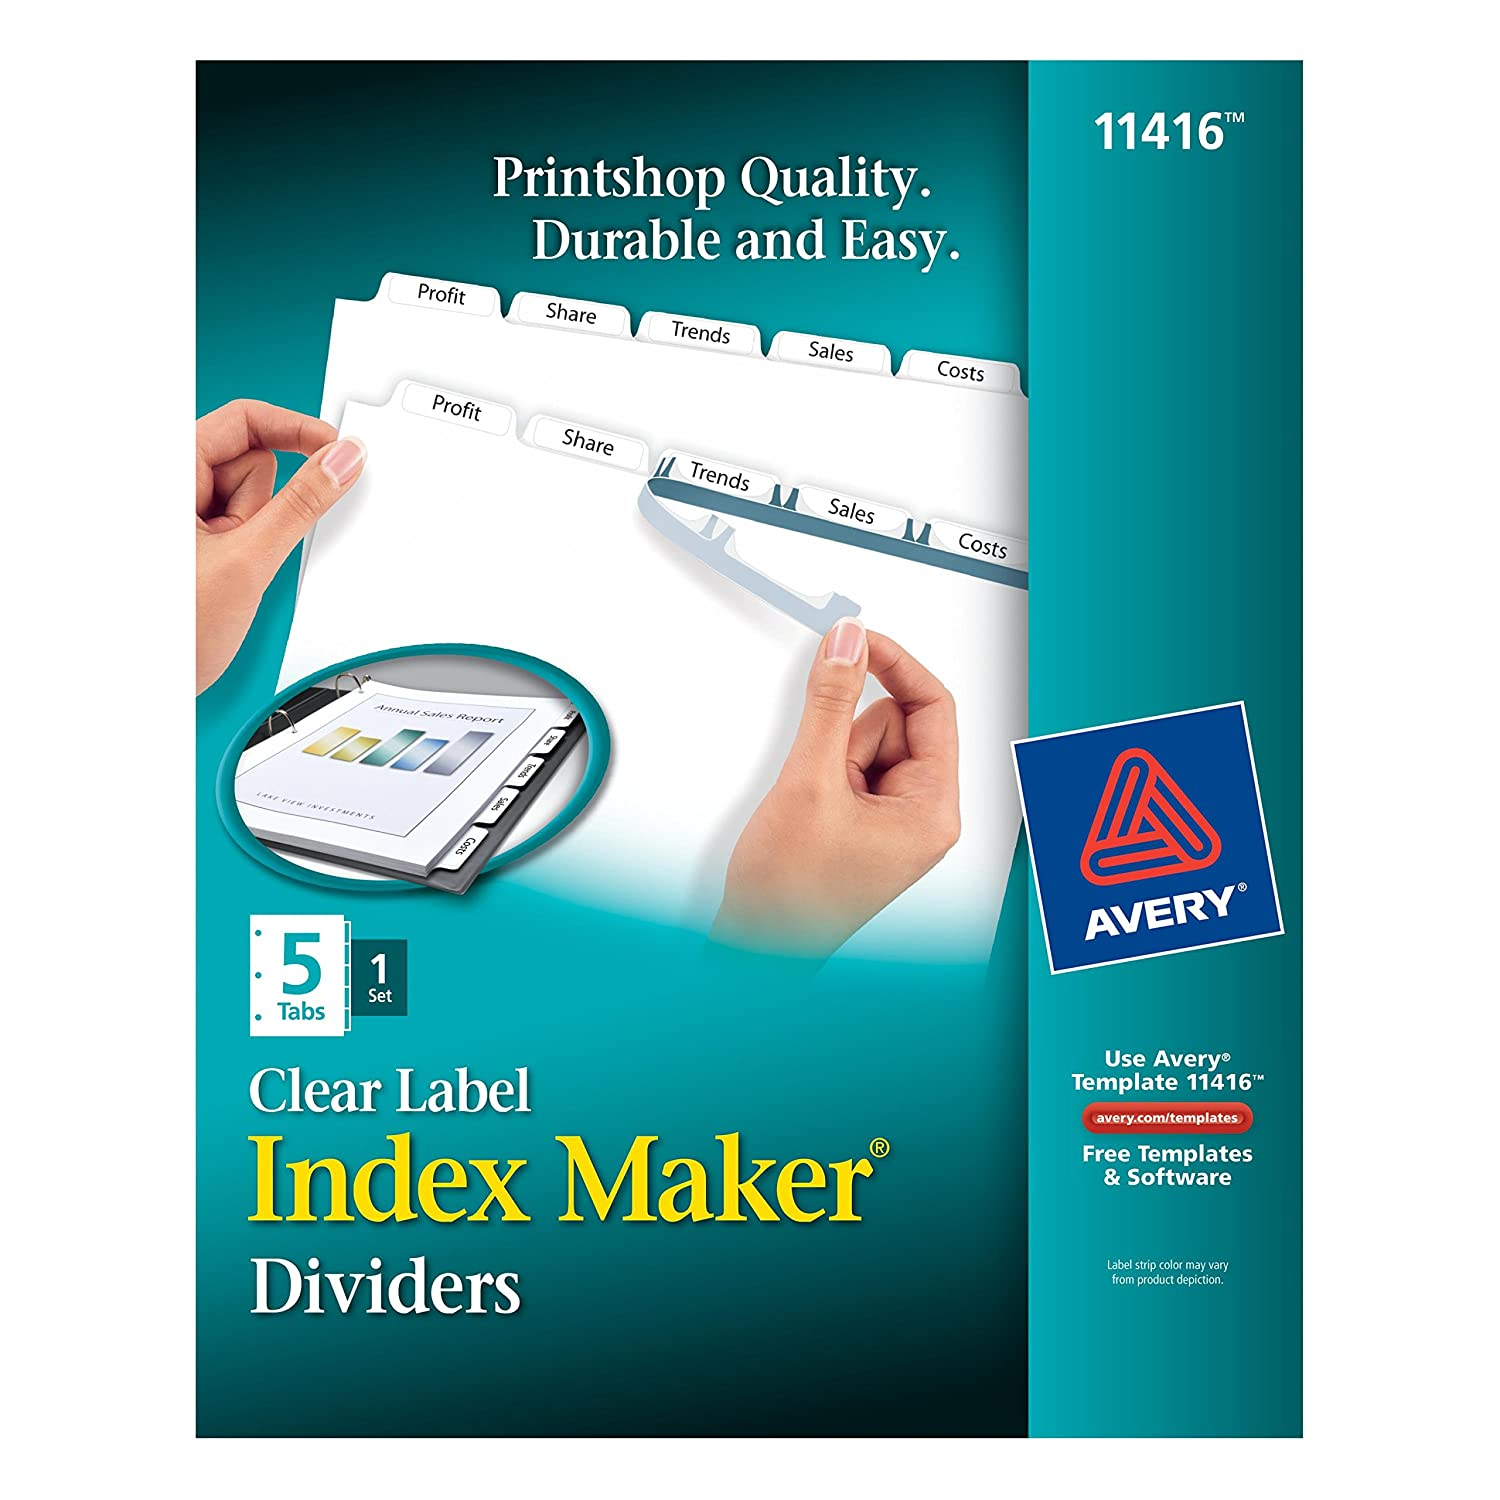 Cookbook Cover Template Maker ~ Amazon.com : avery index maker clear label dividers 8.5 x 11 inches